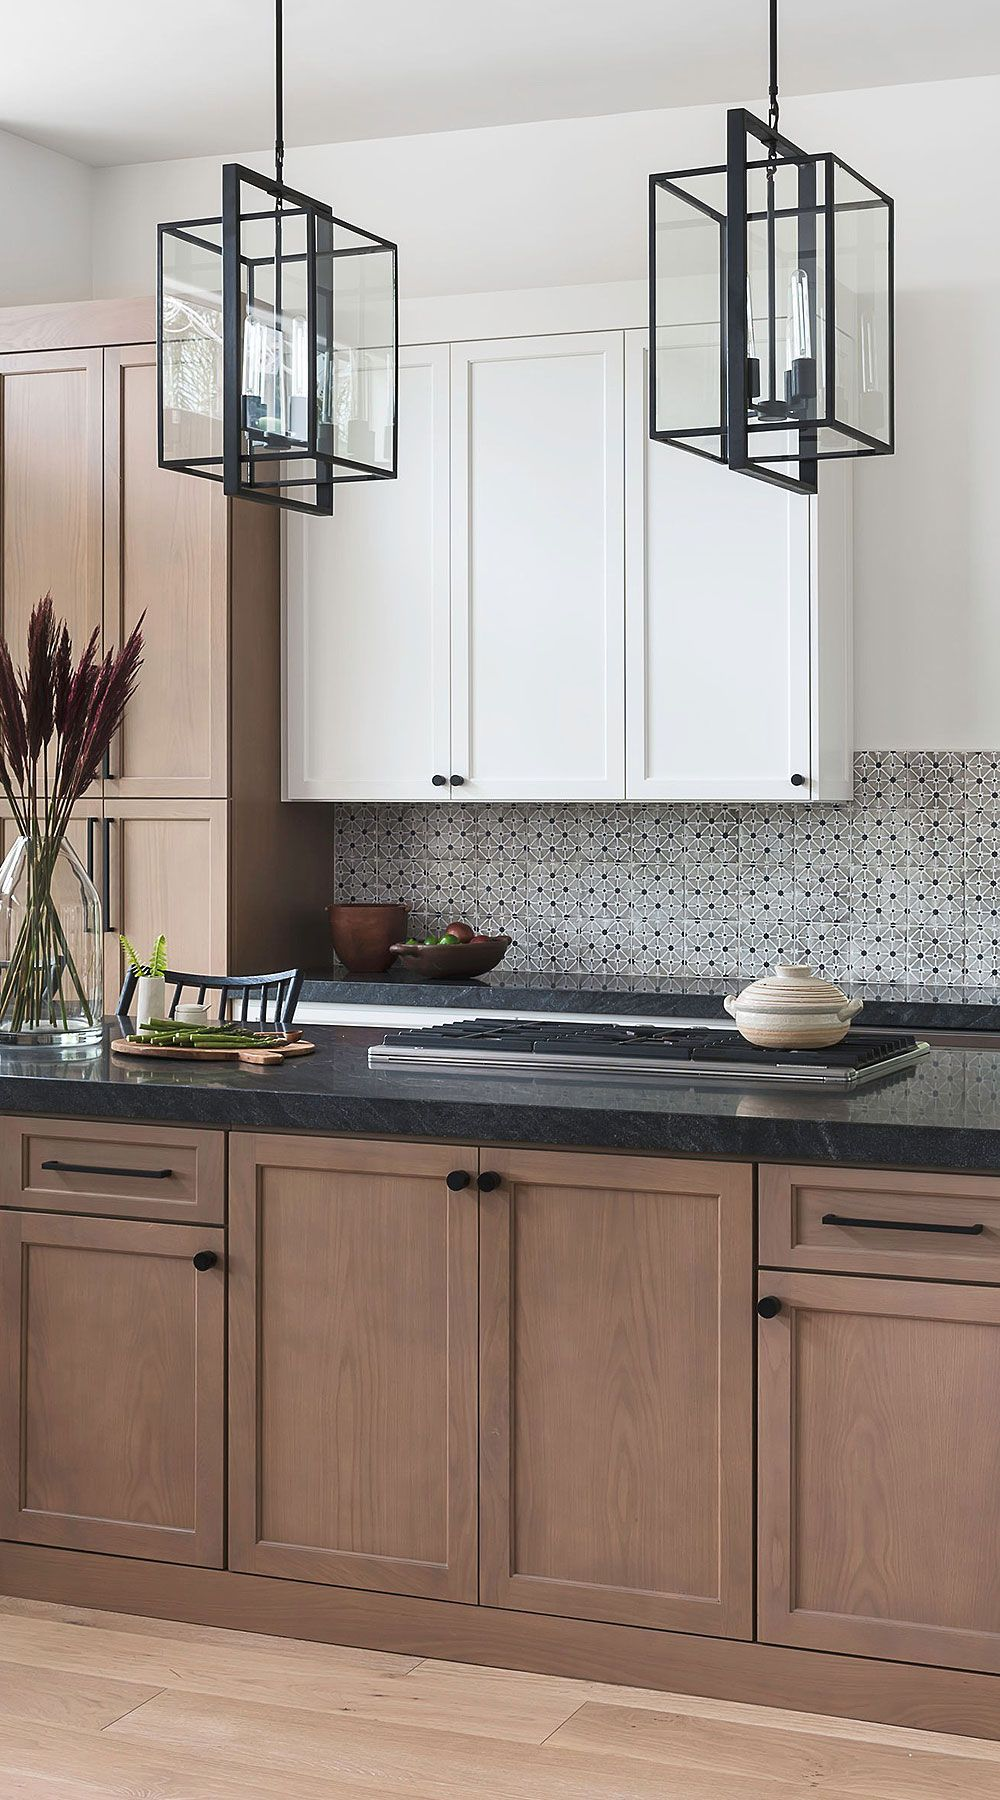 50+ Black Countertop Backsplash Ideas (Tile Designs, Tips ... on Backsplash Ideas For Black Countertops  id=72798